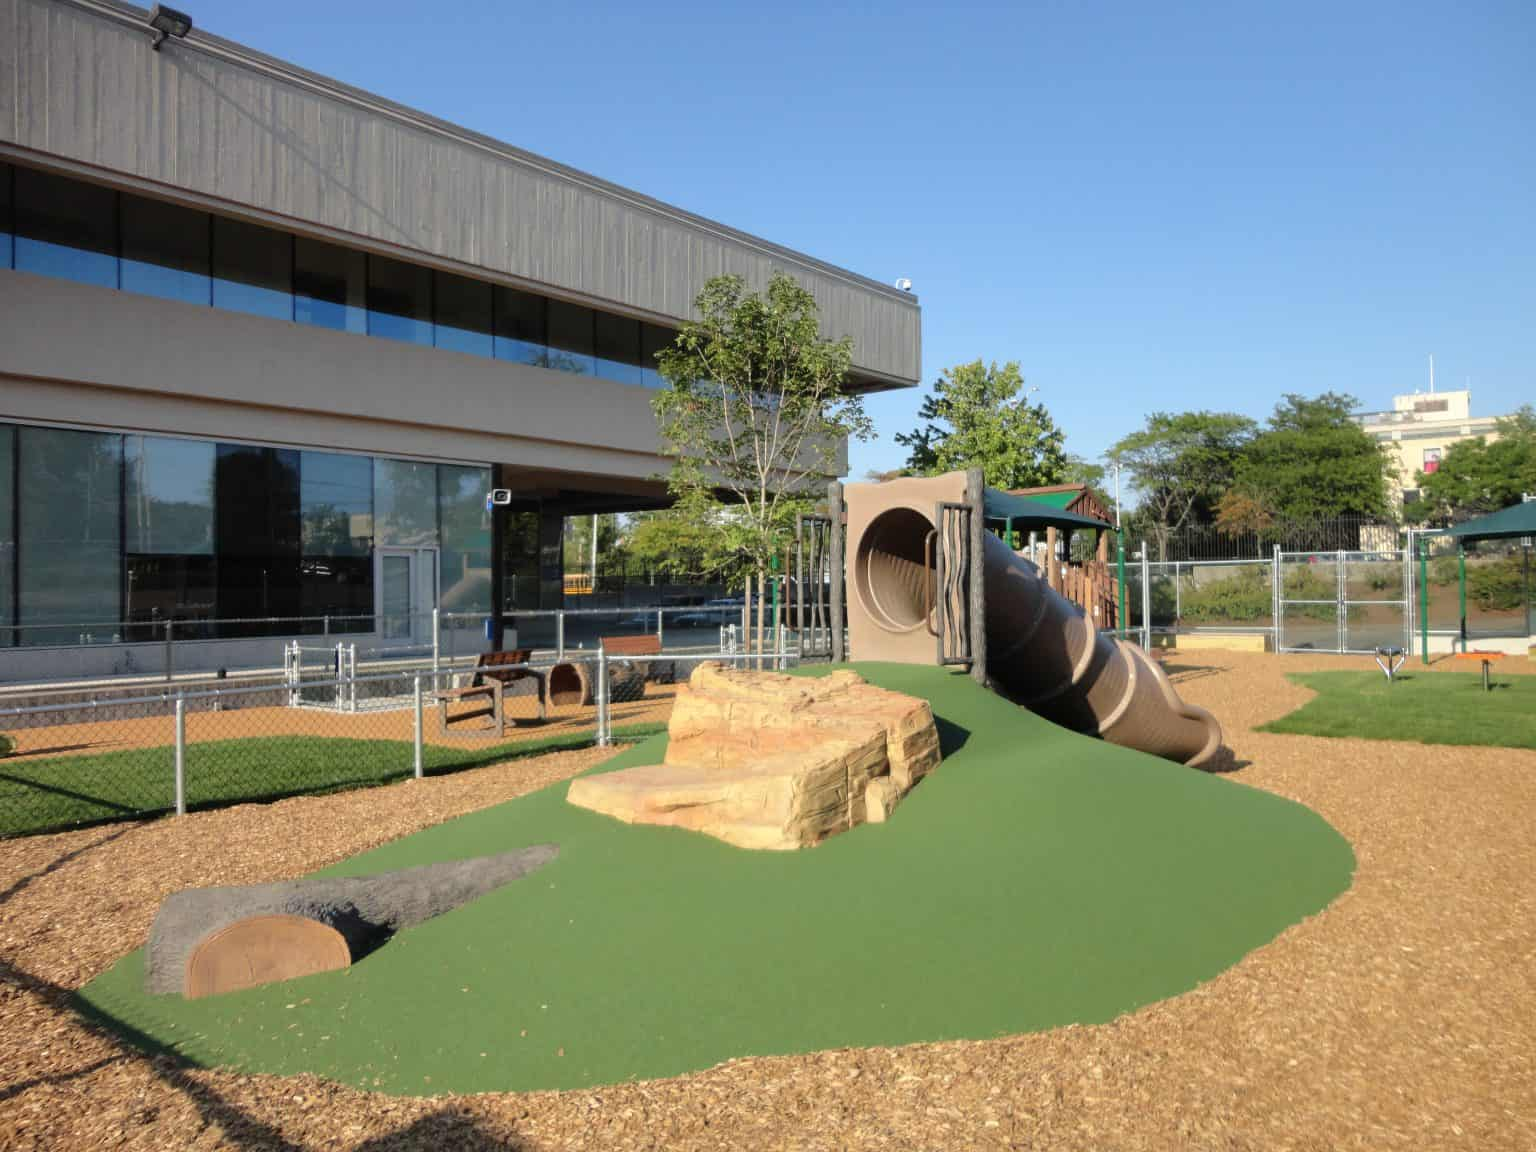 phyllis-bodel-daycare-playground-new-haven-ct_17507023203_o-1536x1152